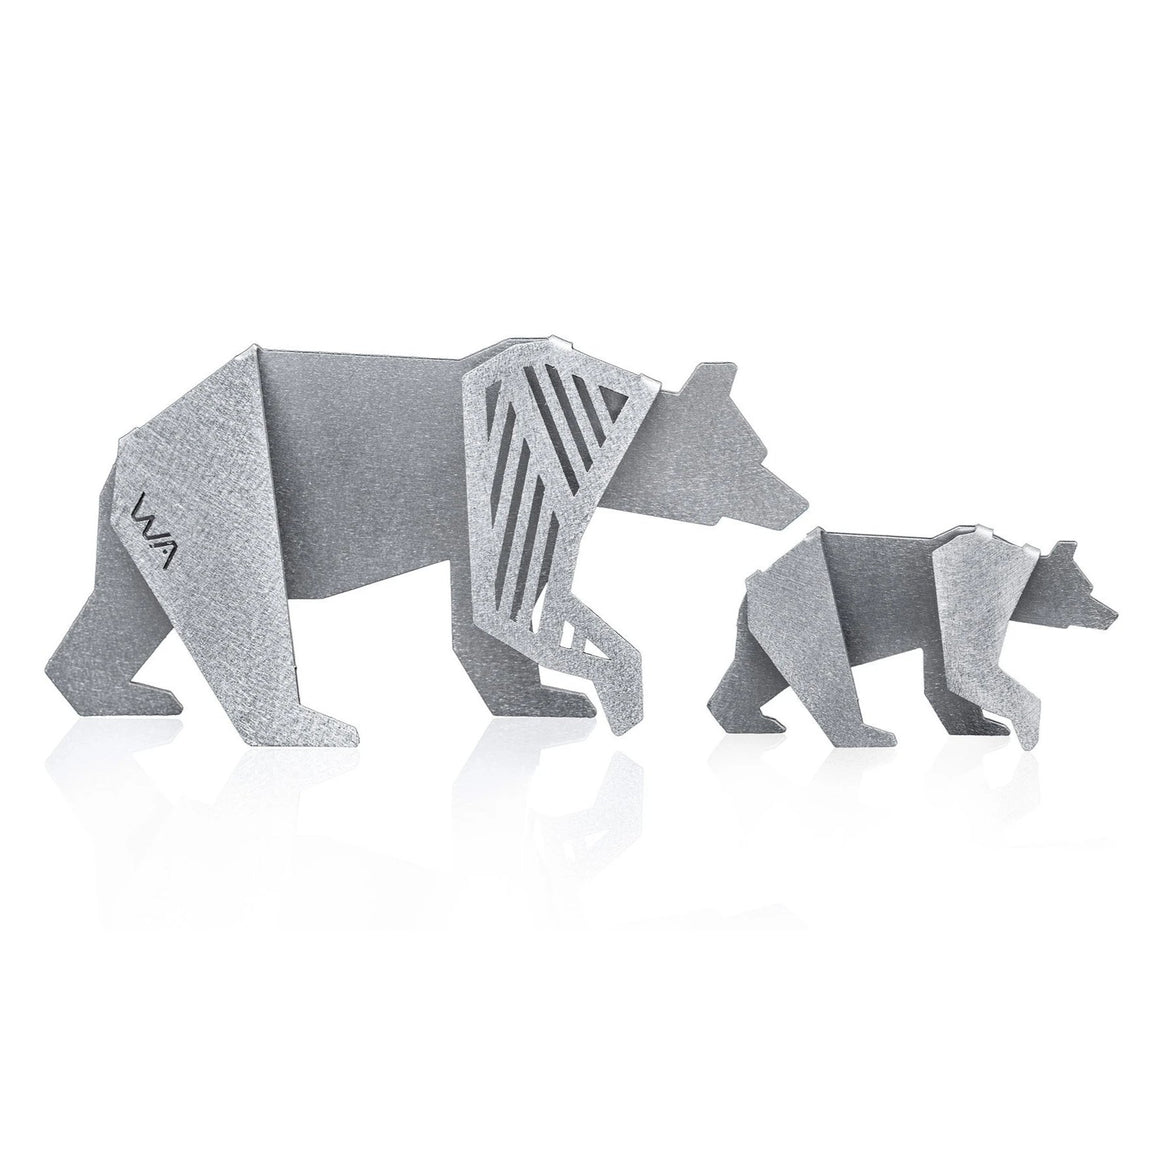 MAMA BEAR & BABY BEAR Figurines